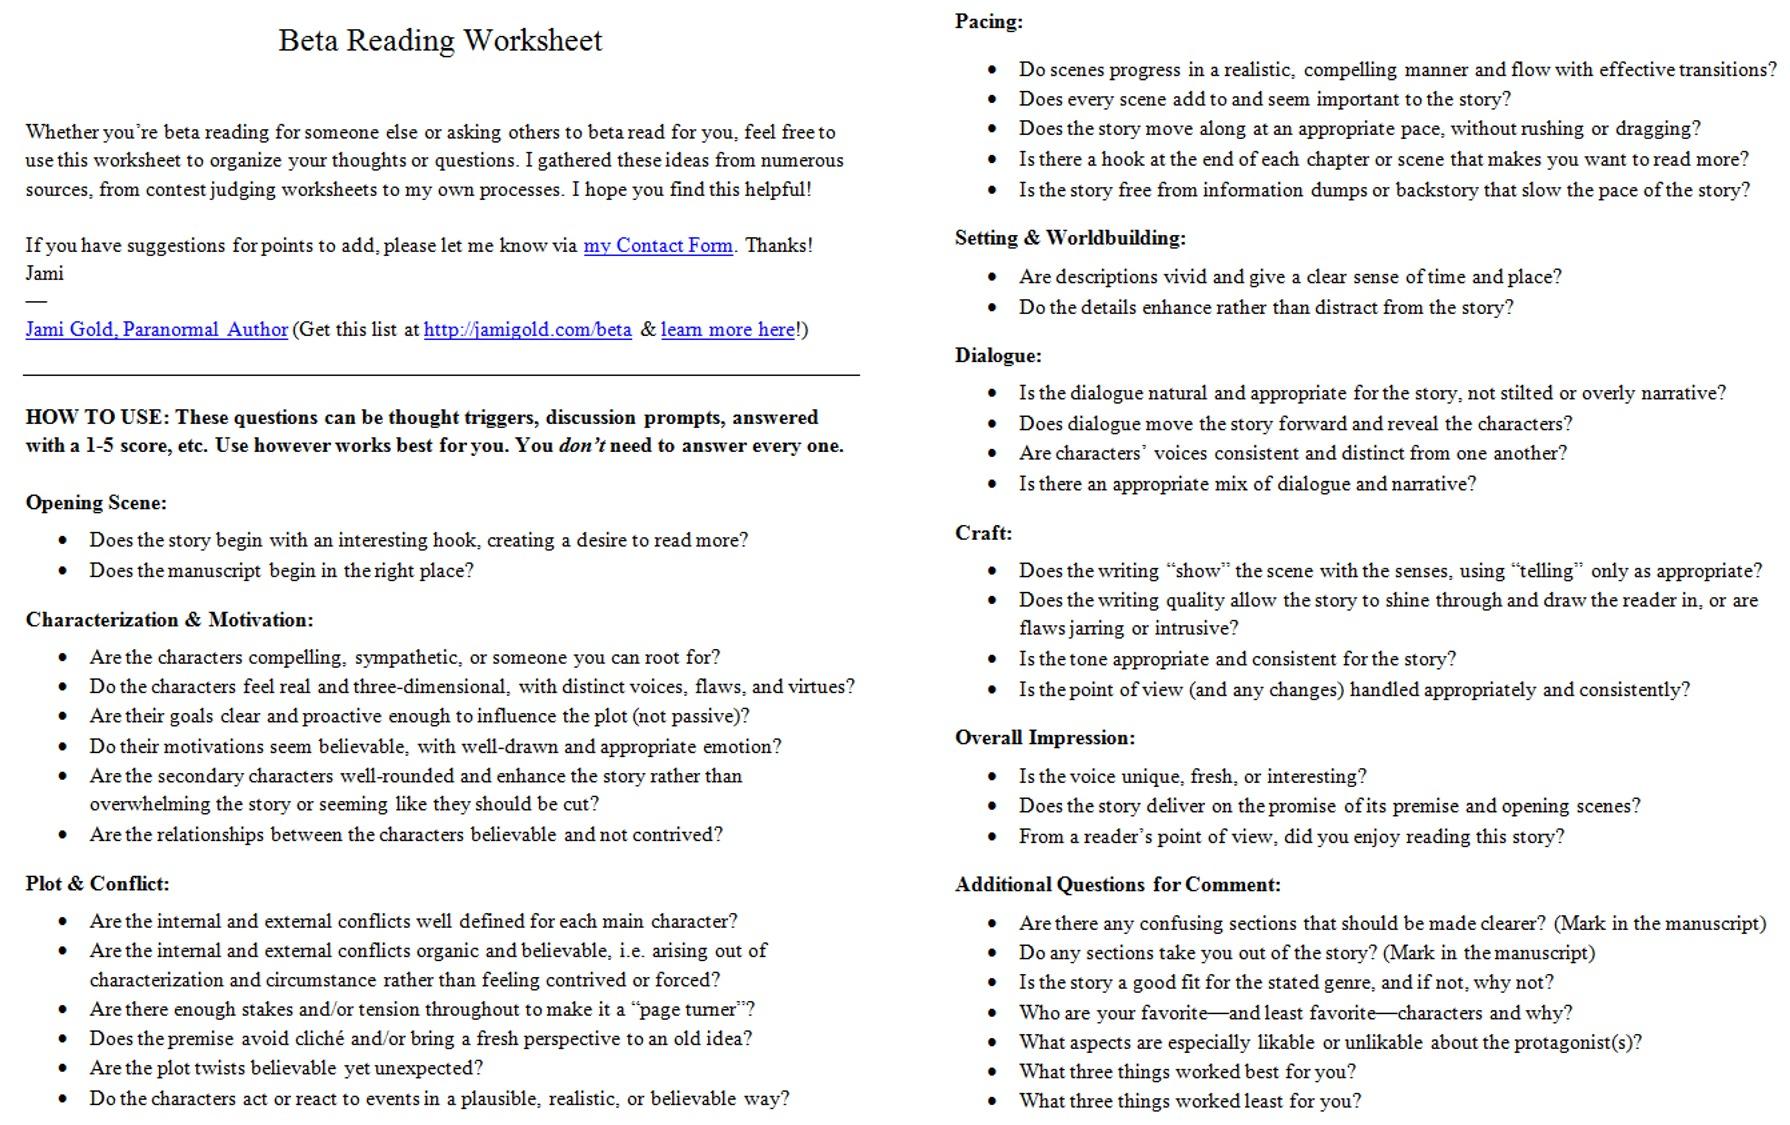 Weirdmailus  Nice Worksheets For Writers  Jami Gold Paranormal Author With Fair Screen Shot Of The Twopage Beta Reading Worksheet With Captivating First School Worksheets Also Kingdom Classification Worksheet In Addition Solutions Worksheet Answers And Vector Worksheet As Well As Science Movie Worksheets Additionally Multiplying And Dividing Scientific Notation Worksheet From Jamigoldcom With Weirdmailus  Fair Worksheets For Writers  Jami Gold Paranormal Author With Captivating Screen Shot Of The Twopage Beta Reading Worksheet And Nice First School Worksheets Also Kingdom Classification Worksheet In Addition Solutions Worksheet Answers From Jamigoldcom